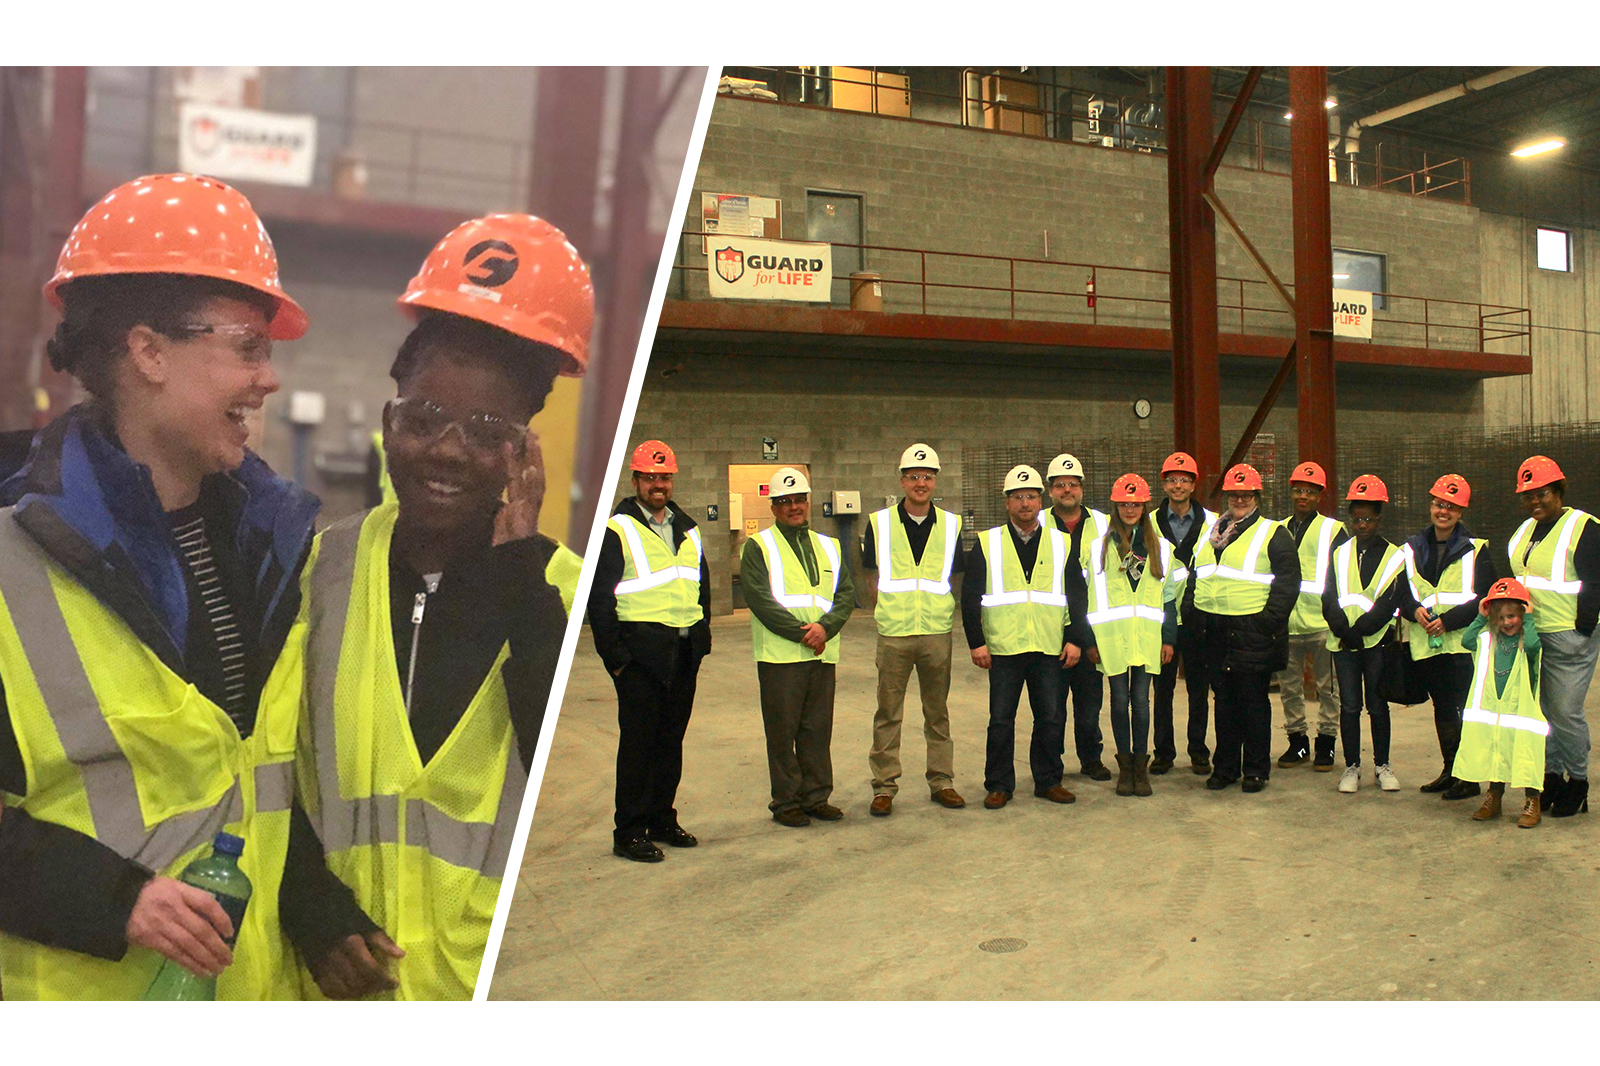 Big Brothers Big Sisters of Dane County 'Kids to Careers Program' Visits County Materials